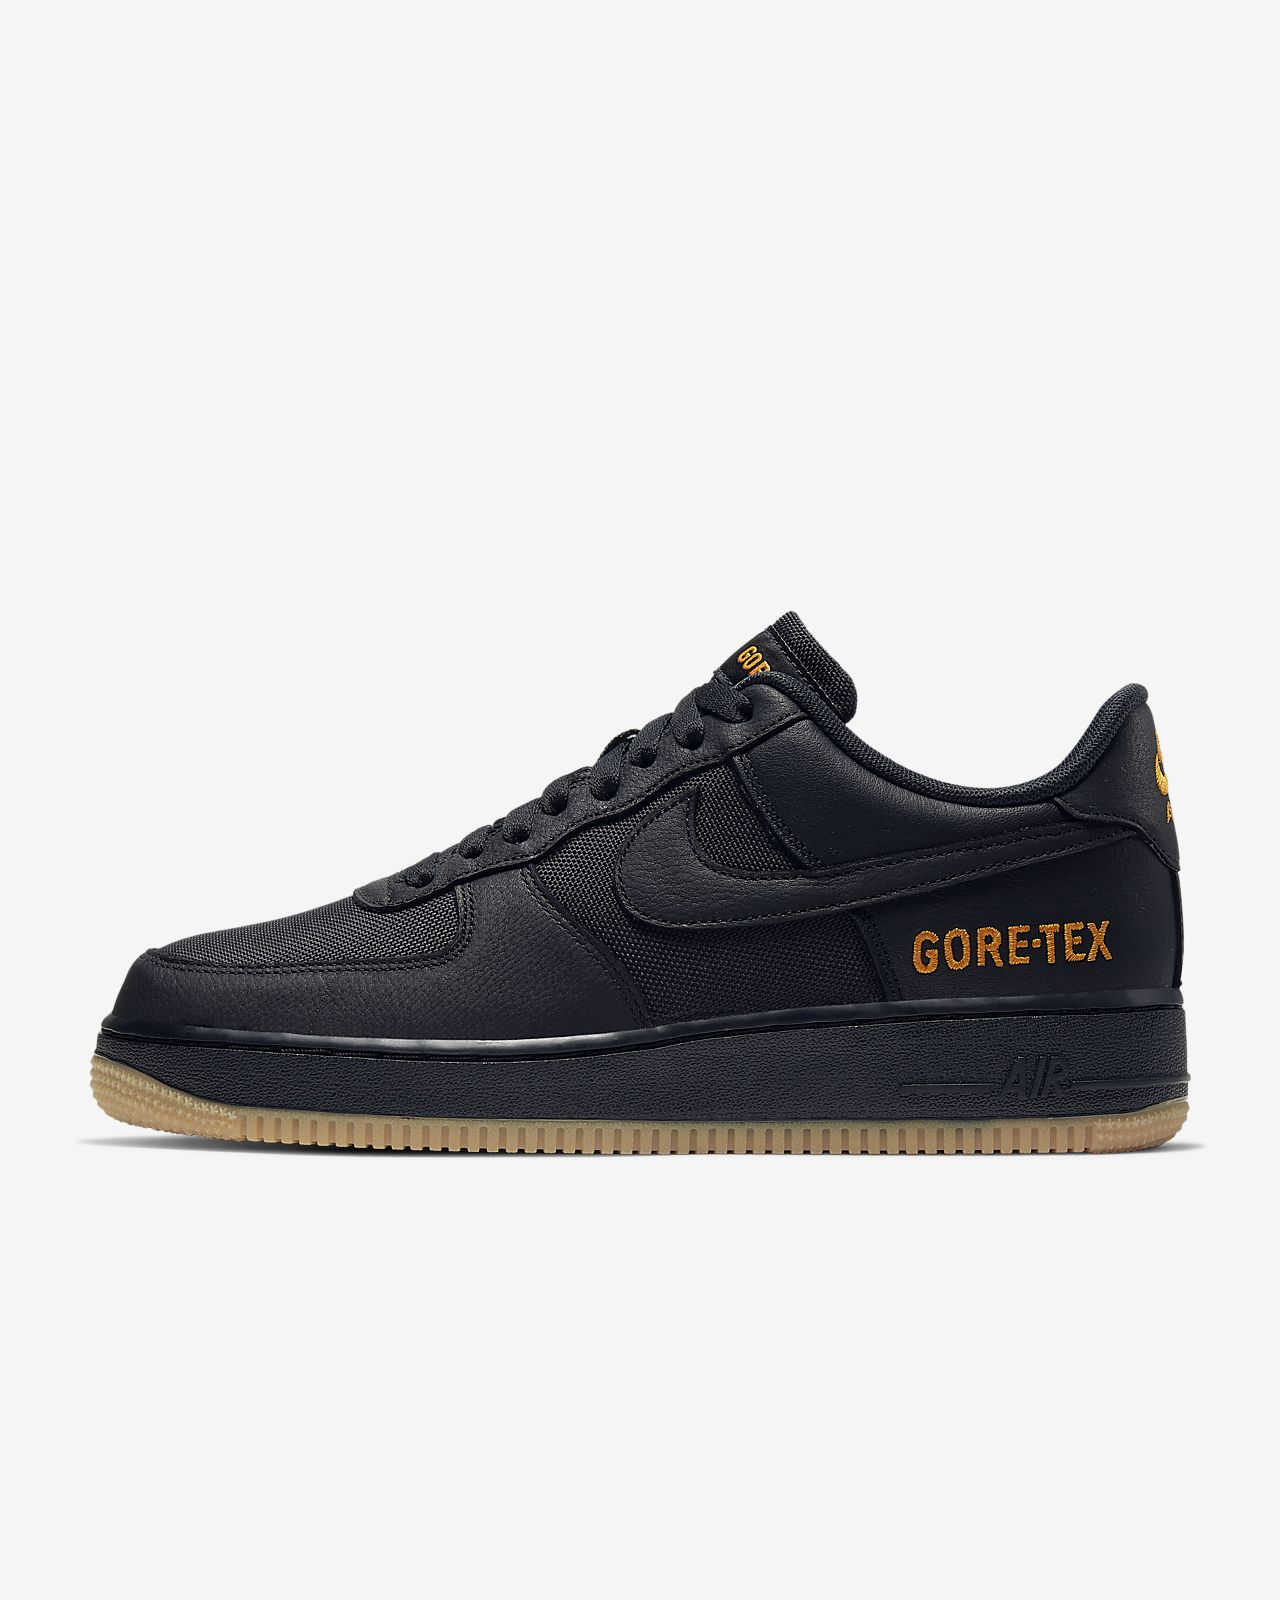 Nike Air Force 1 GORE-TEX sko